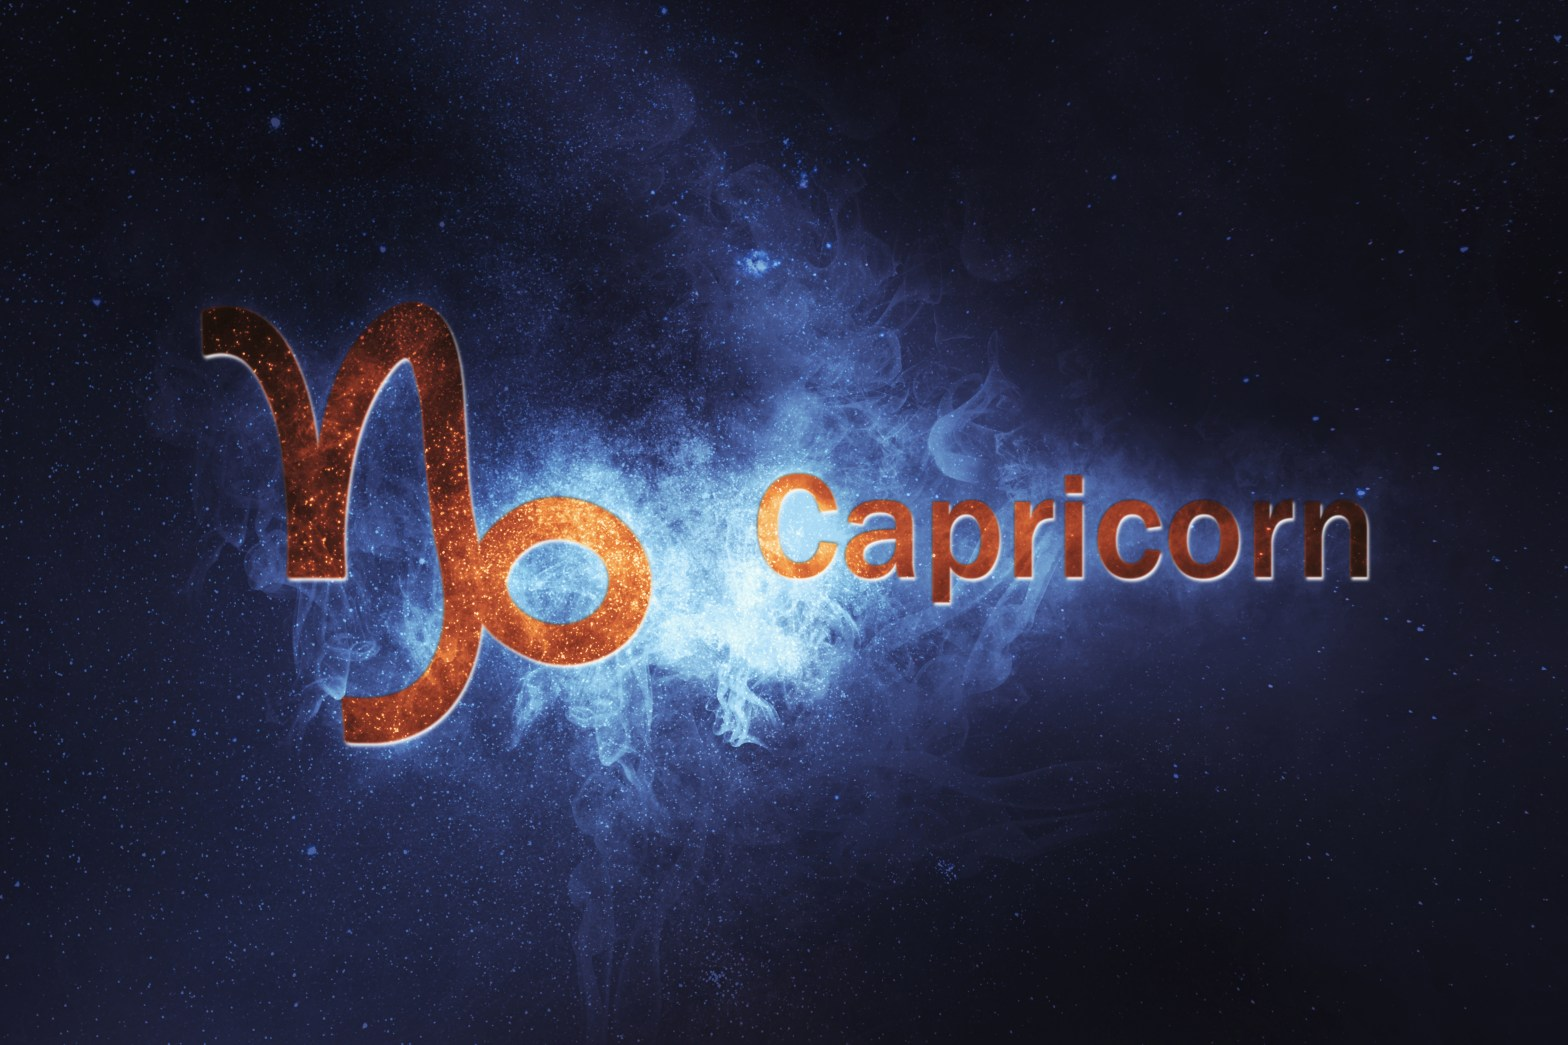 capricorn super powers, capricorn superpowers, capricorn psychic, capricorn psychic abilities, capricorn abilities